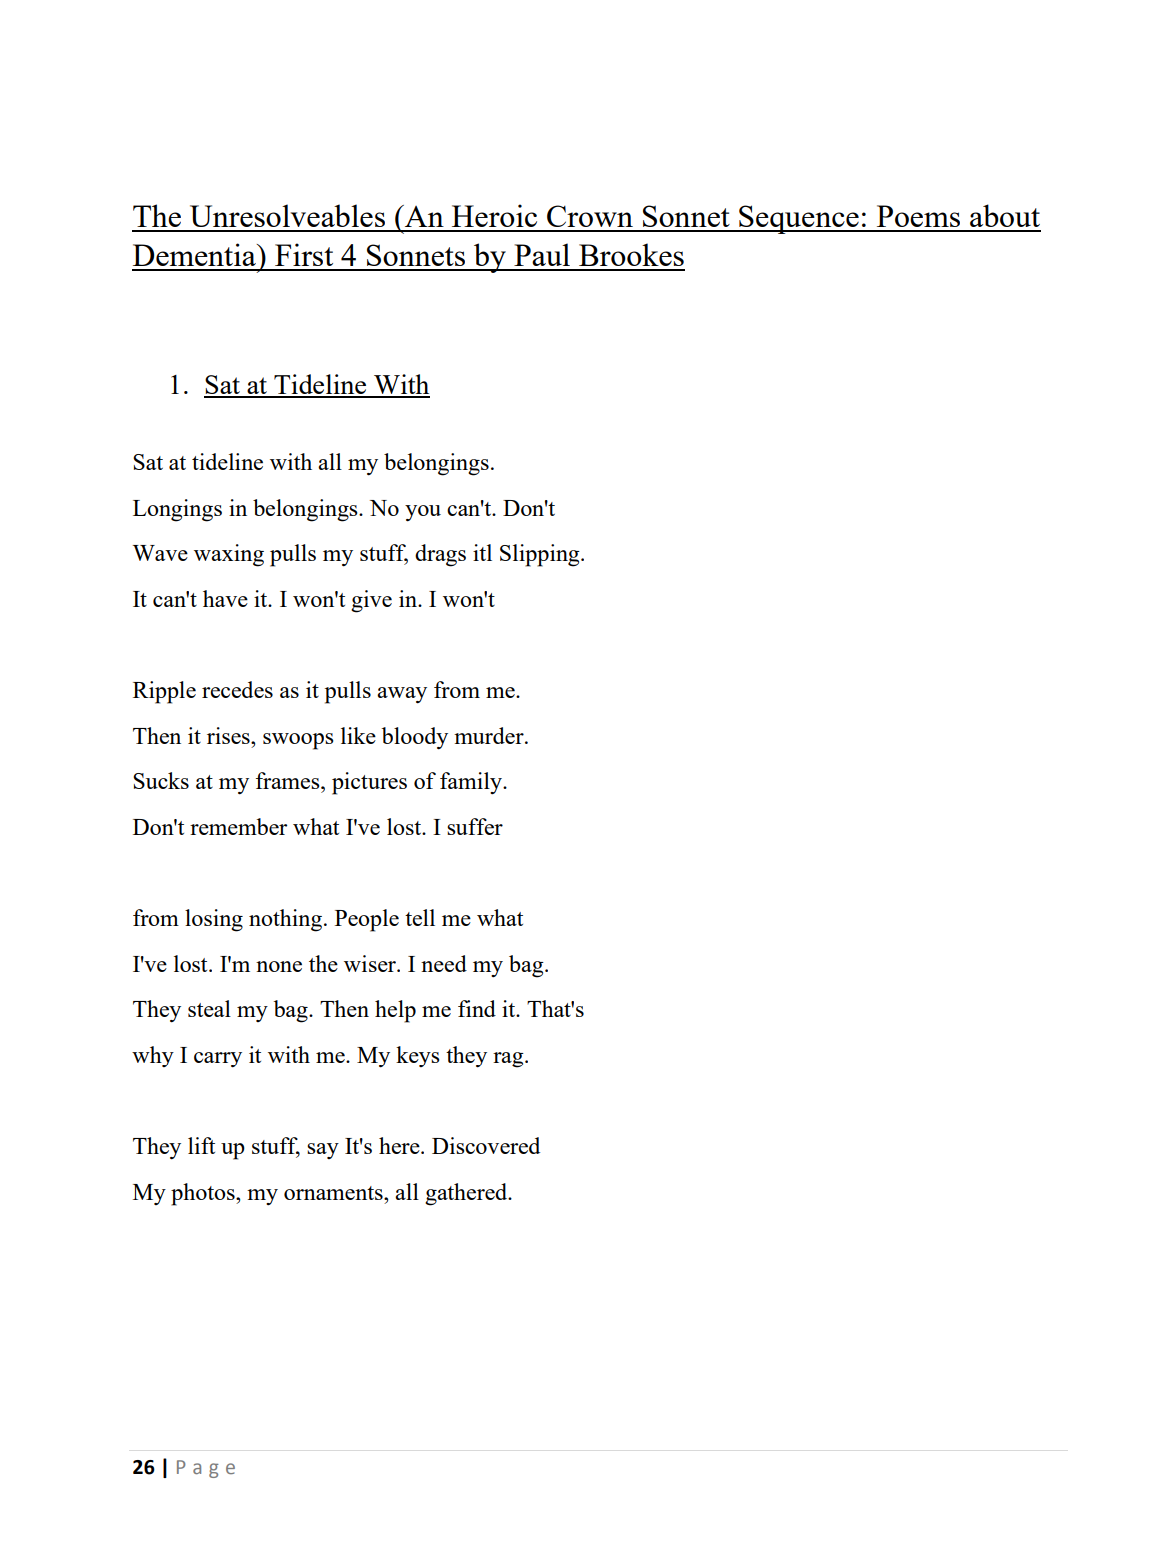 overcome sonnets 1